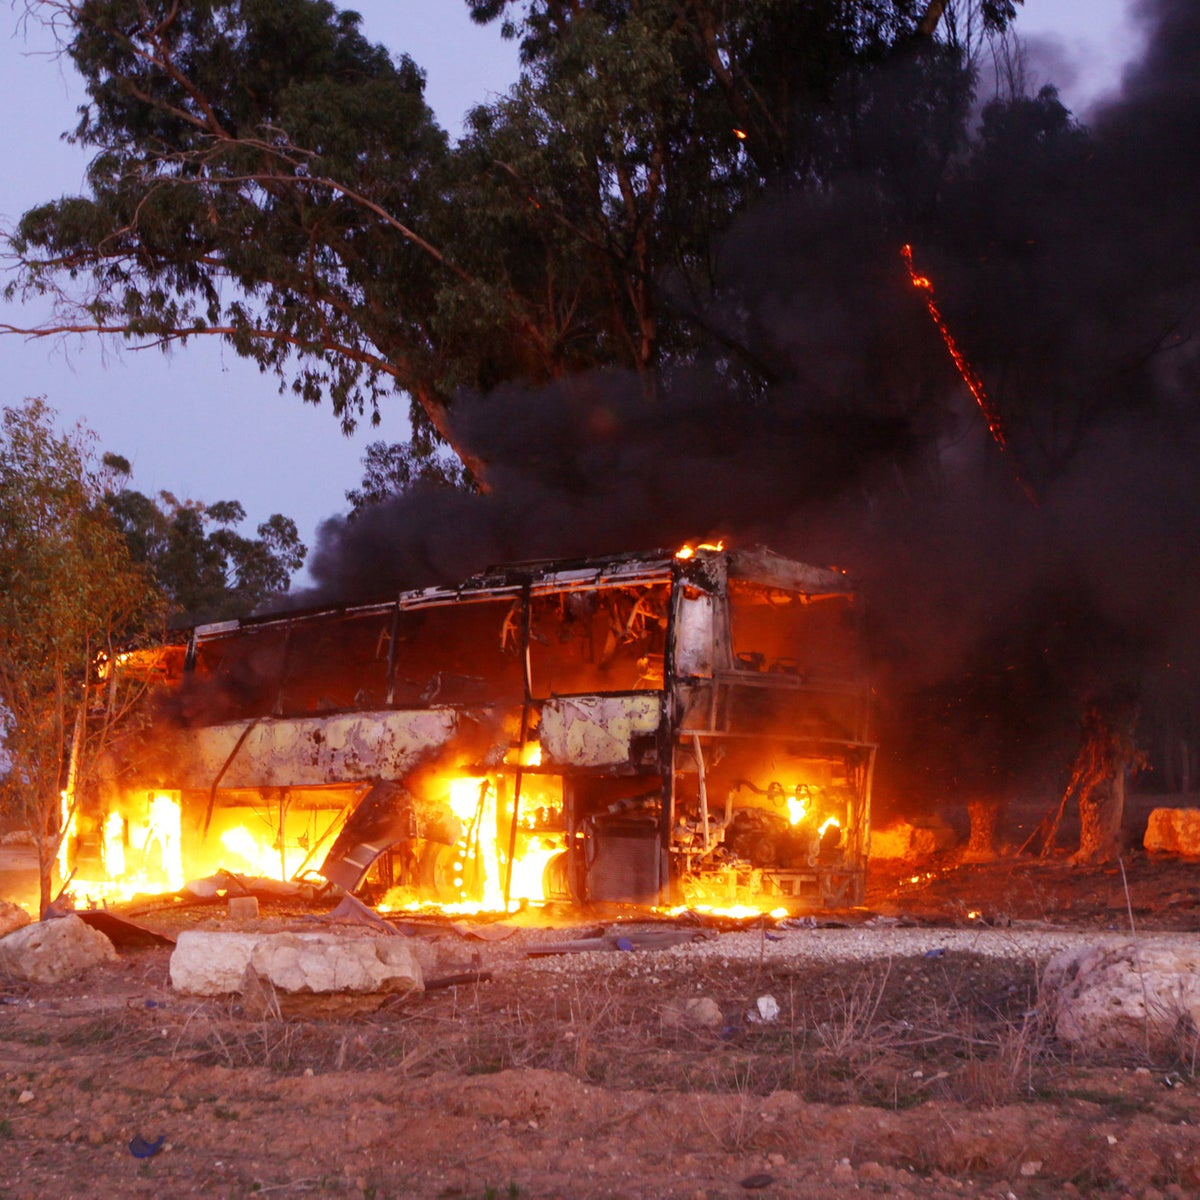 Monday, 16:30: A bus set ablaze after it was hit by a rocket fired from the Gaza Strip, at the Israel-Gaza border near the kibbutz  Sha'ar Hanegev region, Nov. 12, 2018.